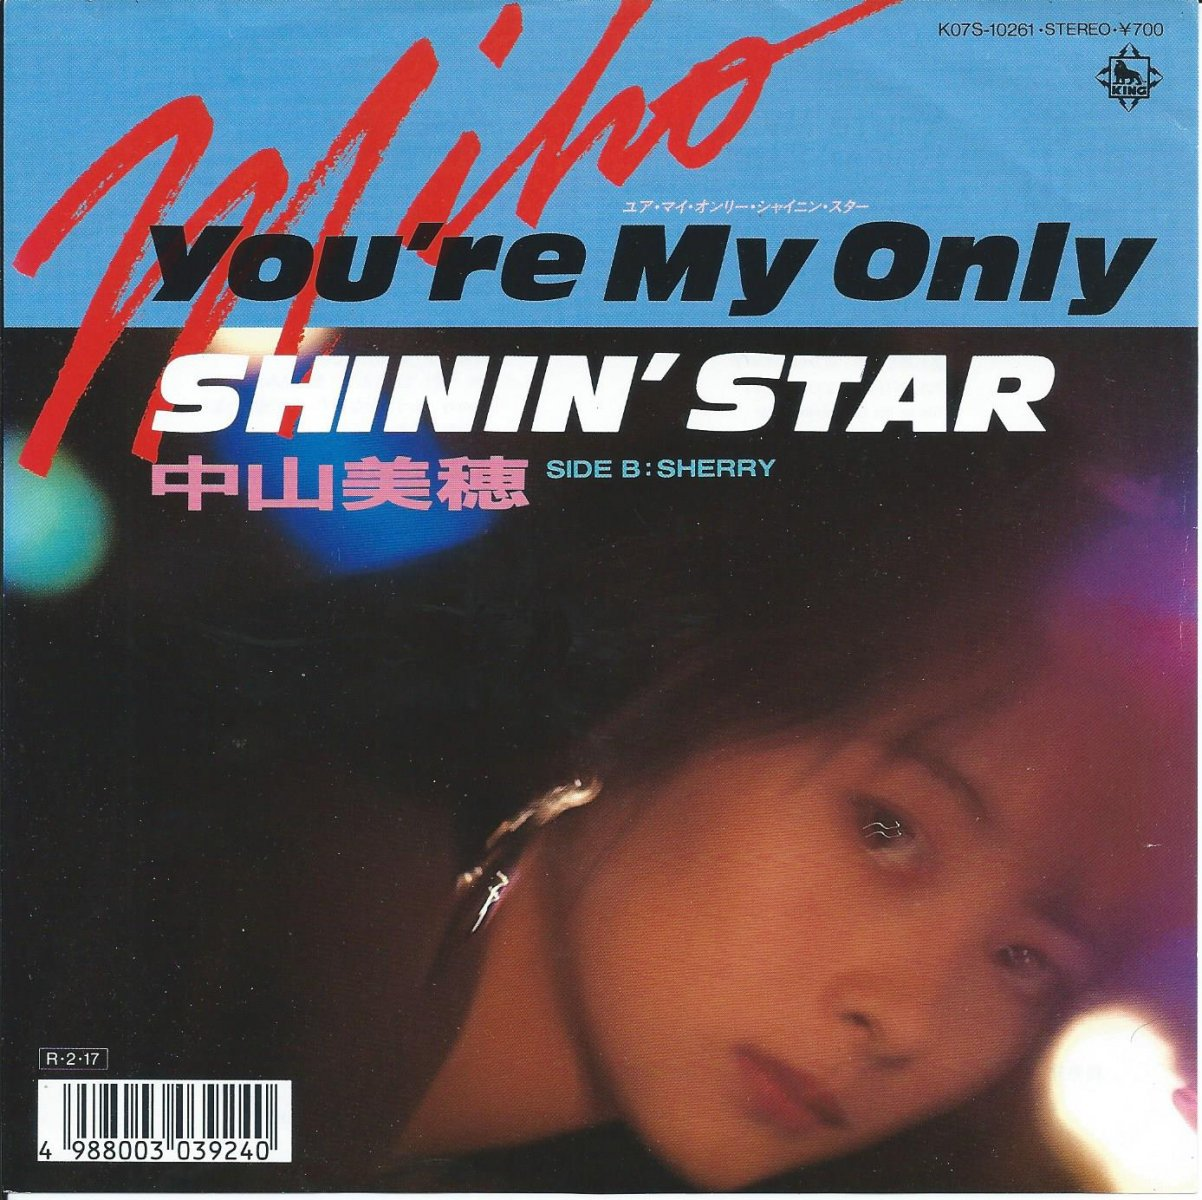 中山美穂 MIHO NAKAYAMA (角松敏生 TOSHIKI KADOMATSU) / YOU'RE MY ONLY SHININ' STAR / SHERRY (7